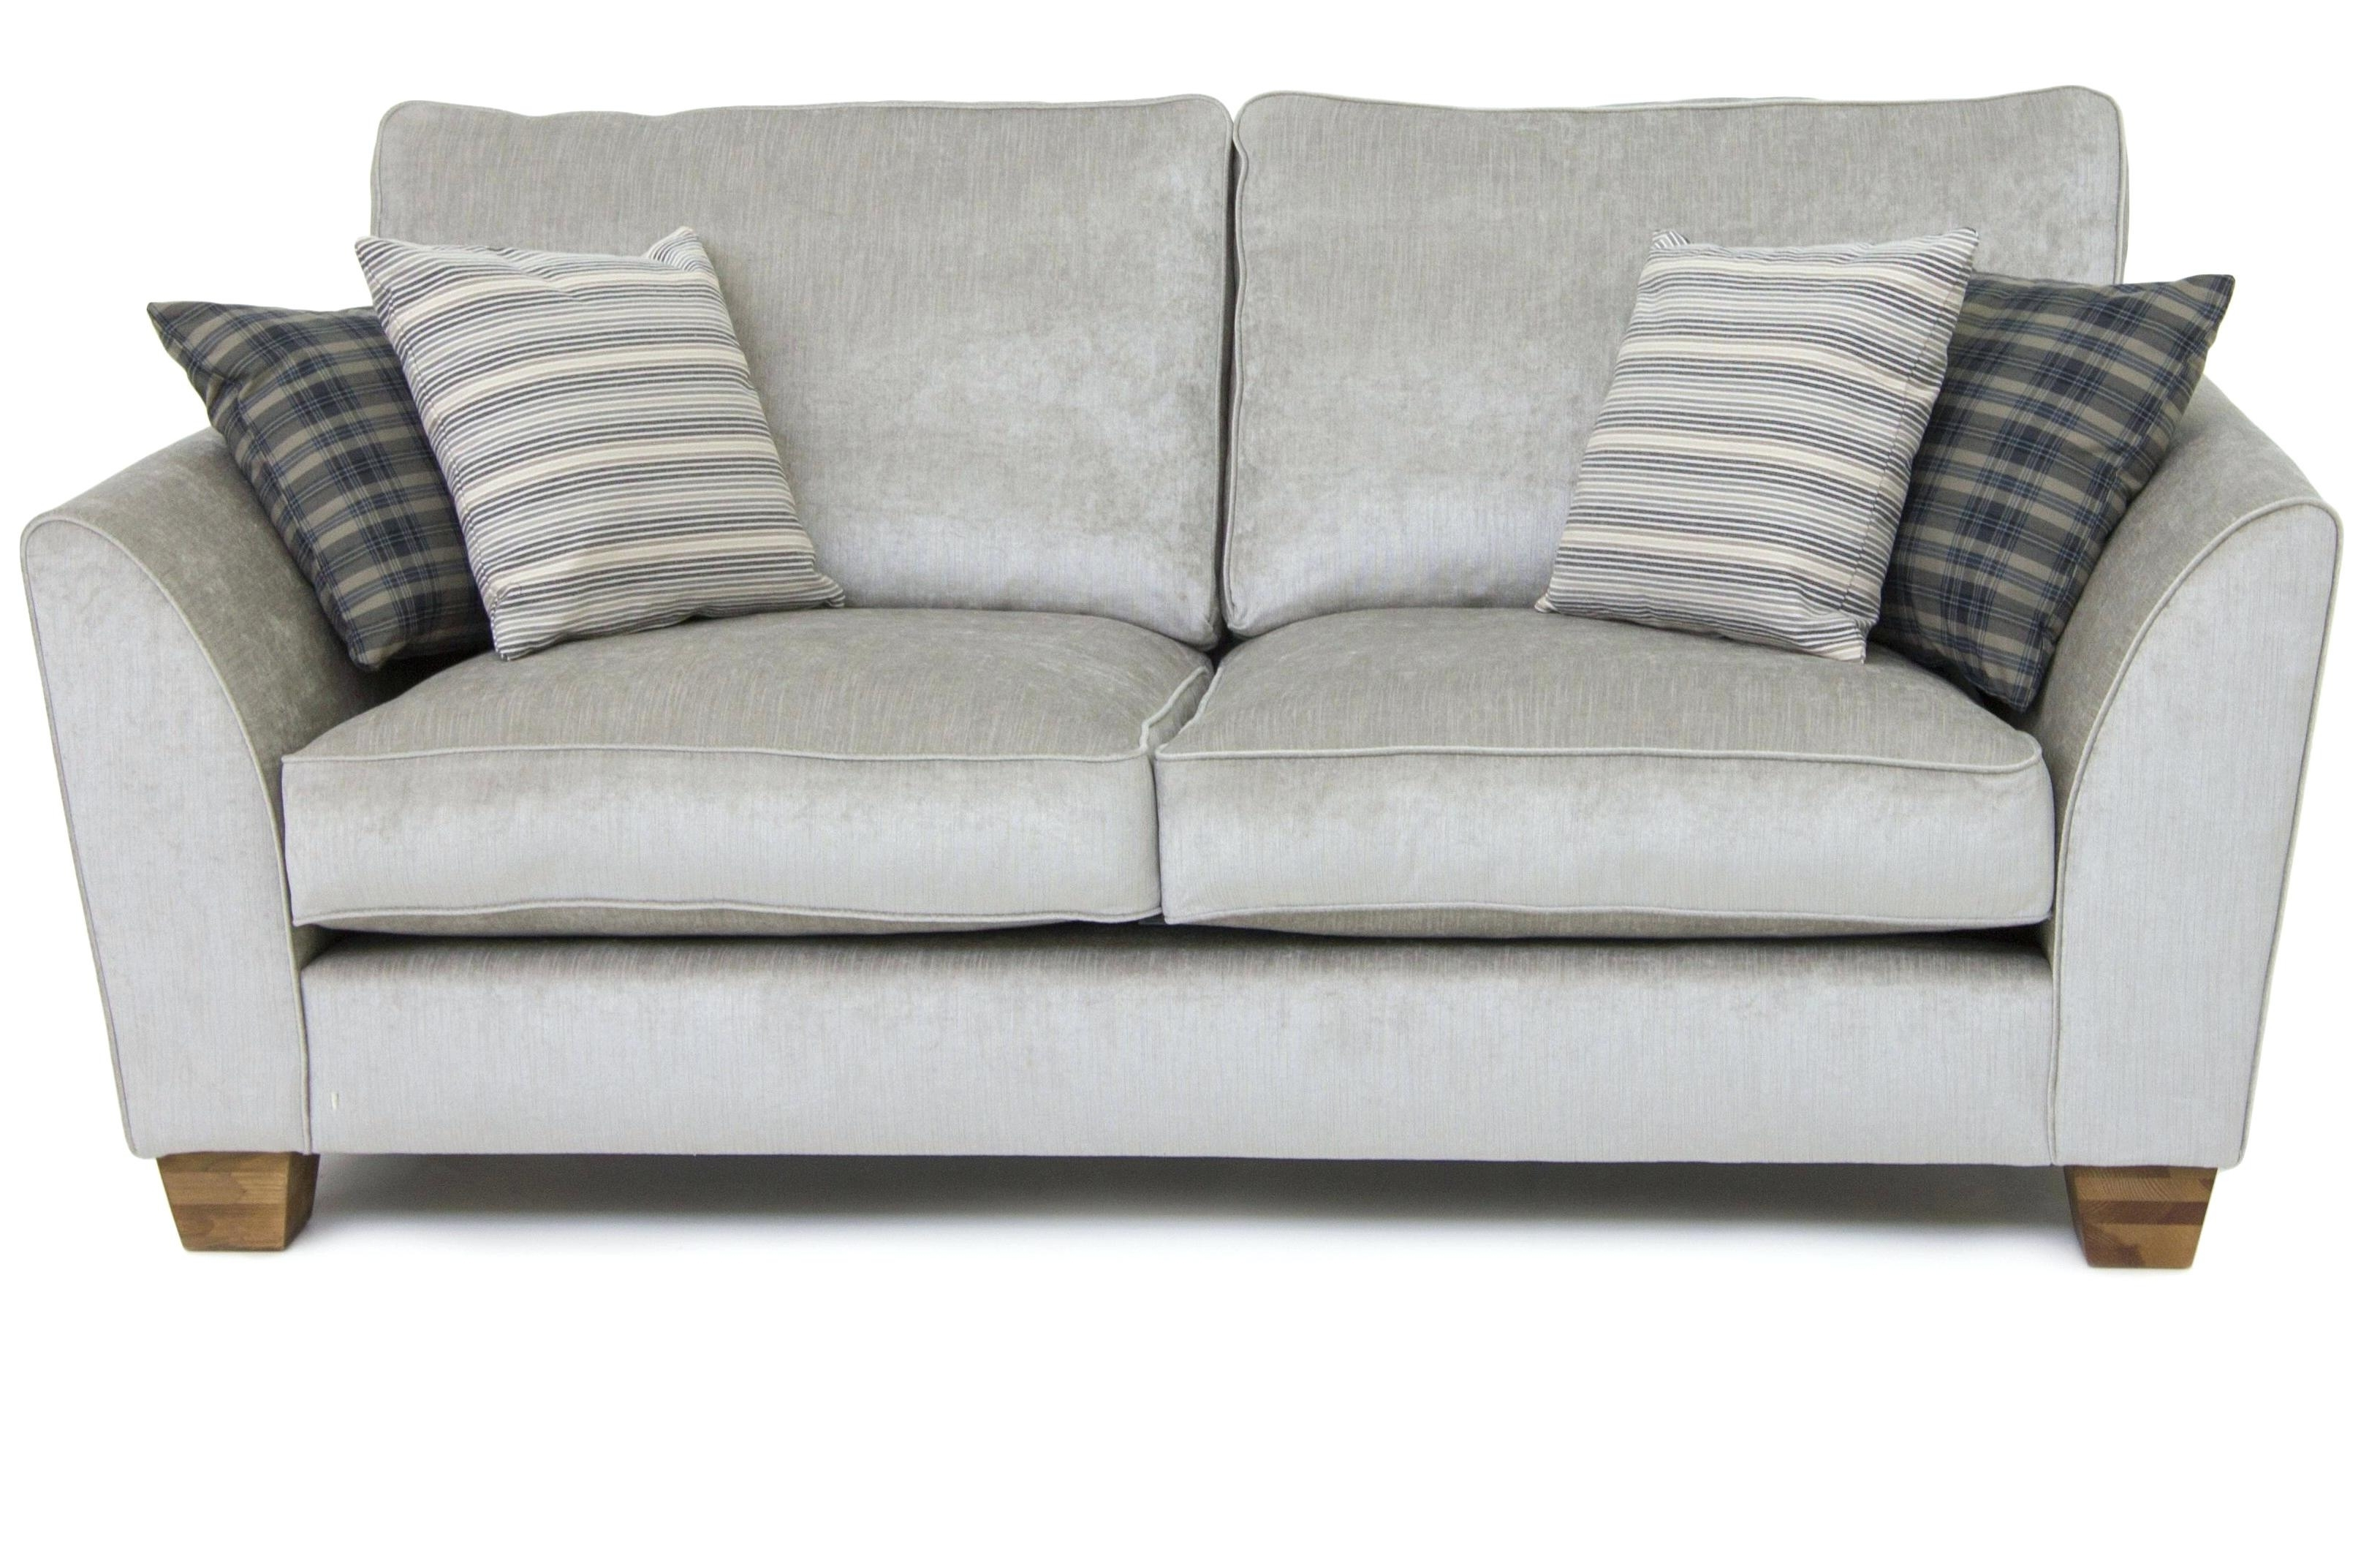 Fashionable Small 2 Seater Sofa – Kaoaz In Small 2 Seater Sofas (View 2 of 15)